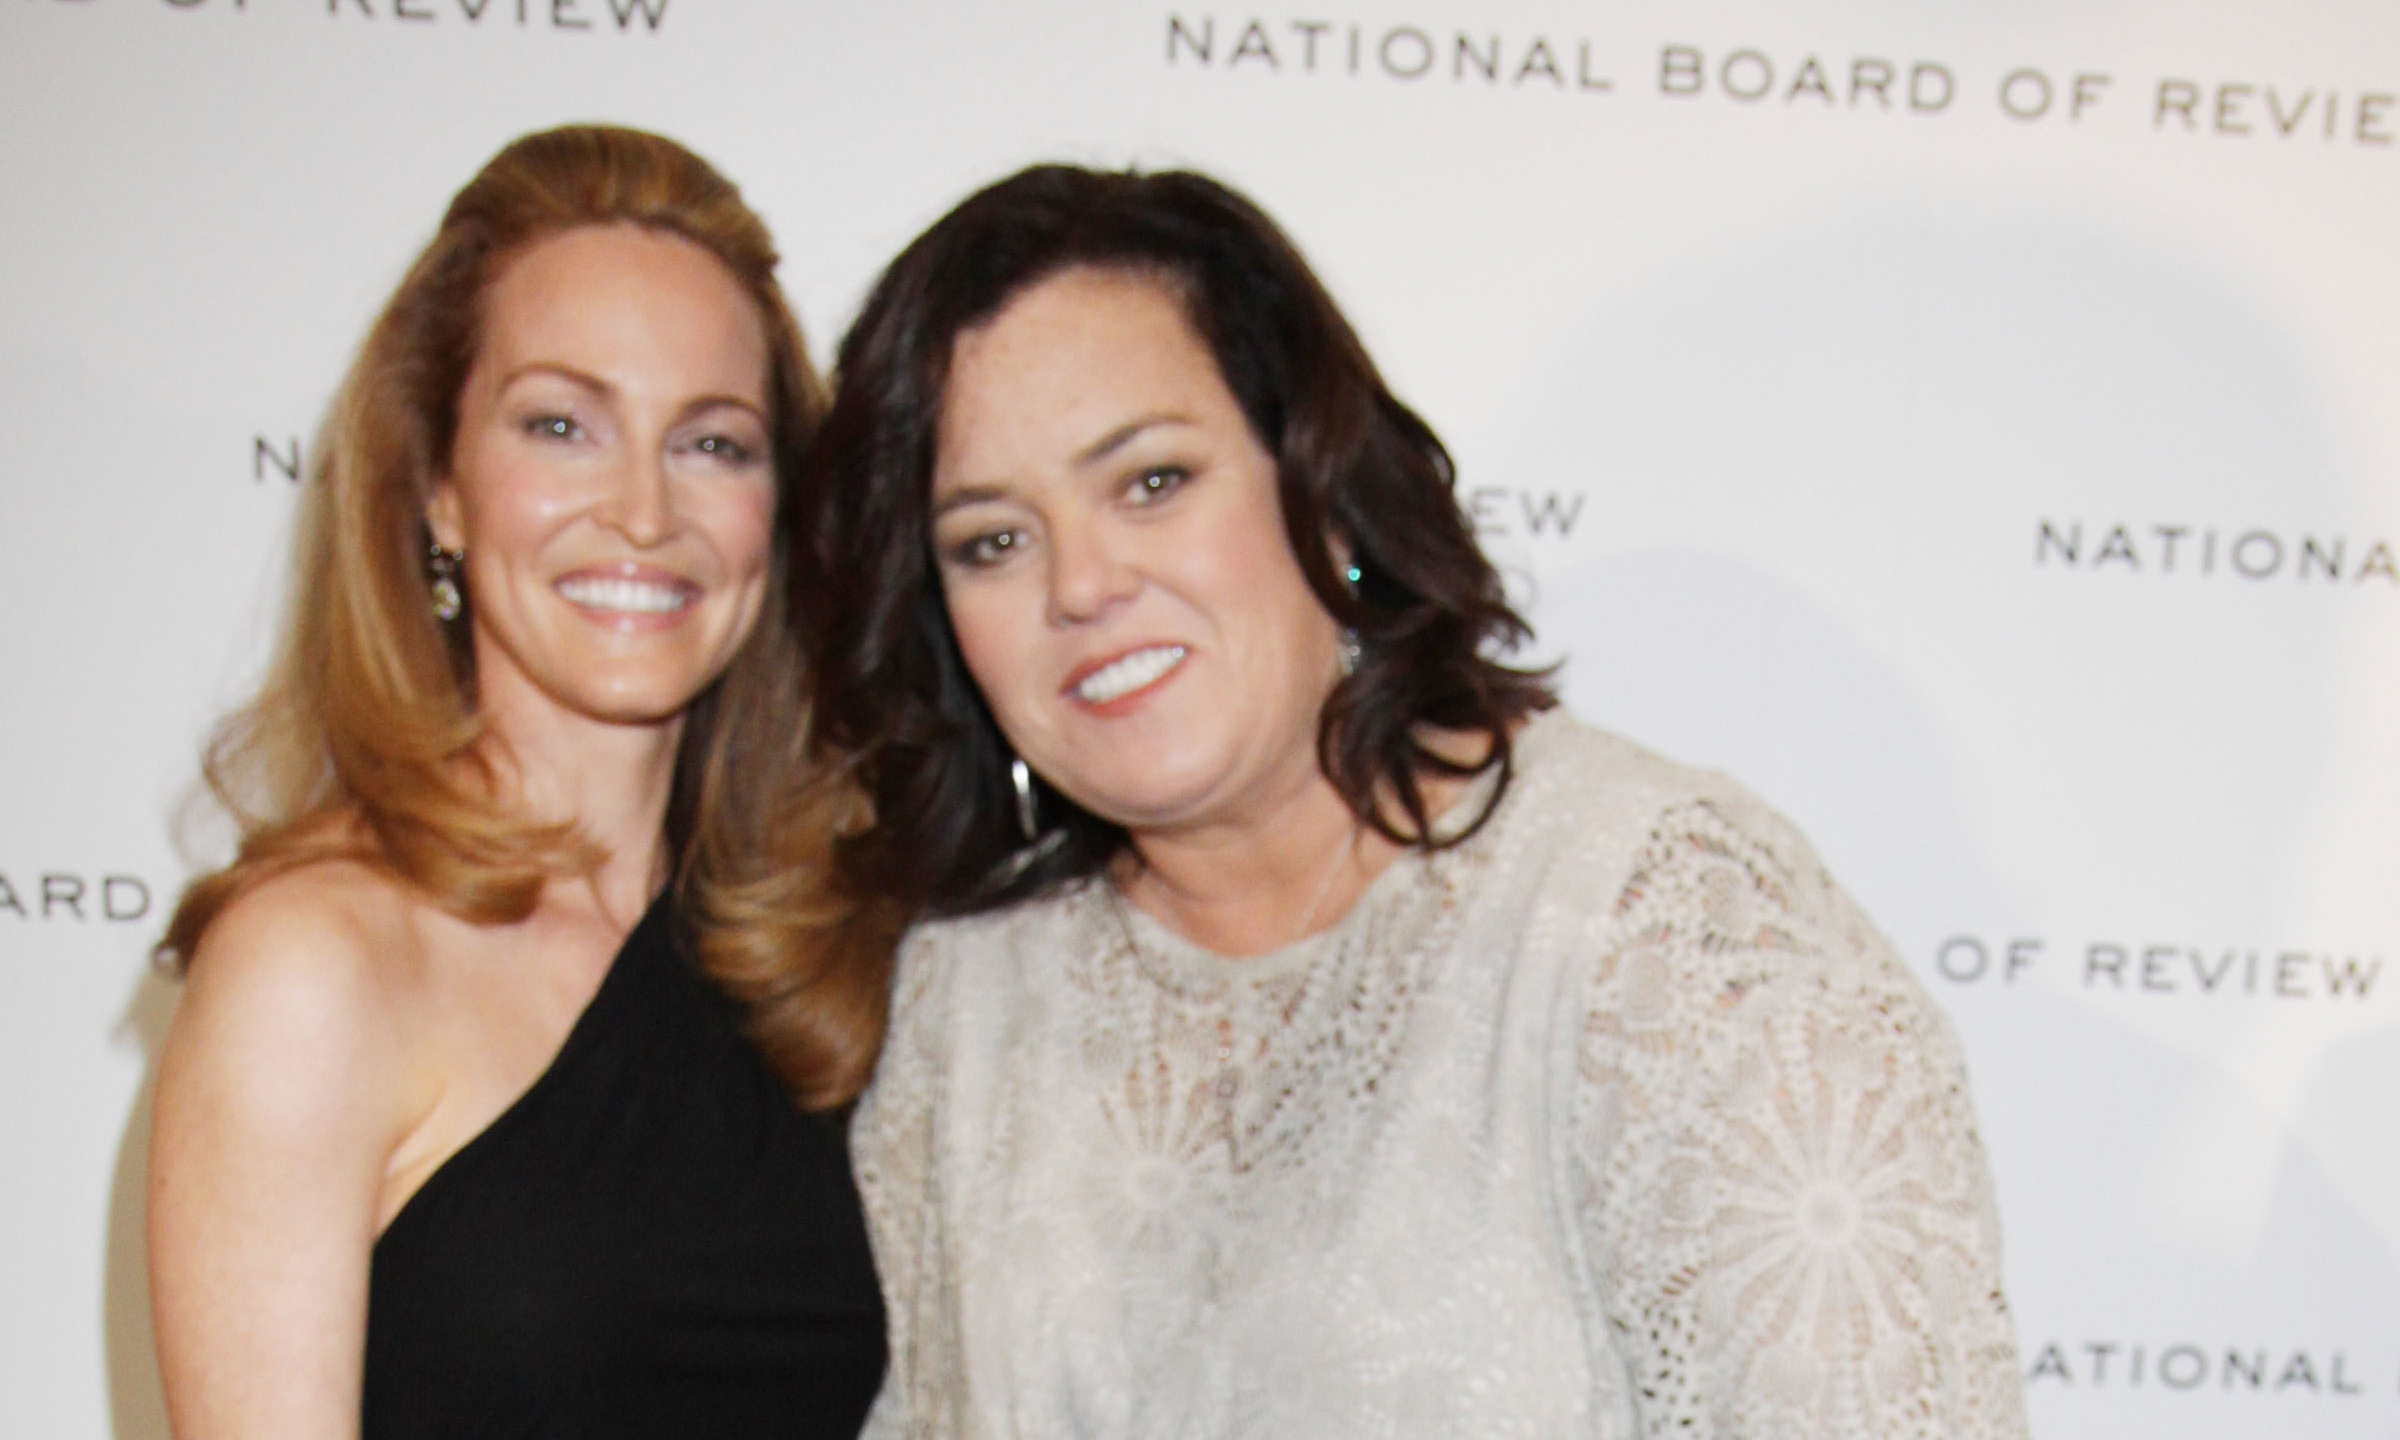 rosie-odonnell-national-board-0821